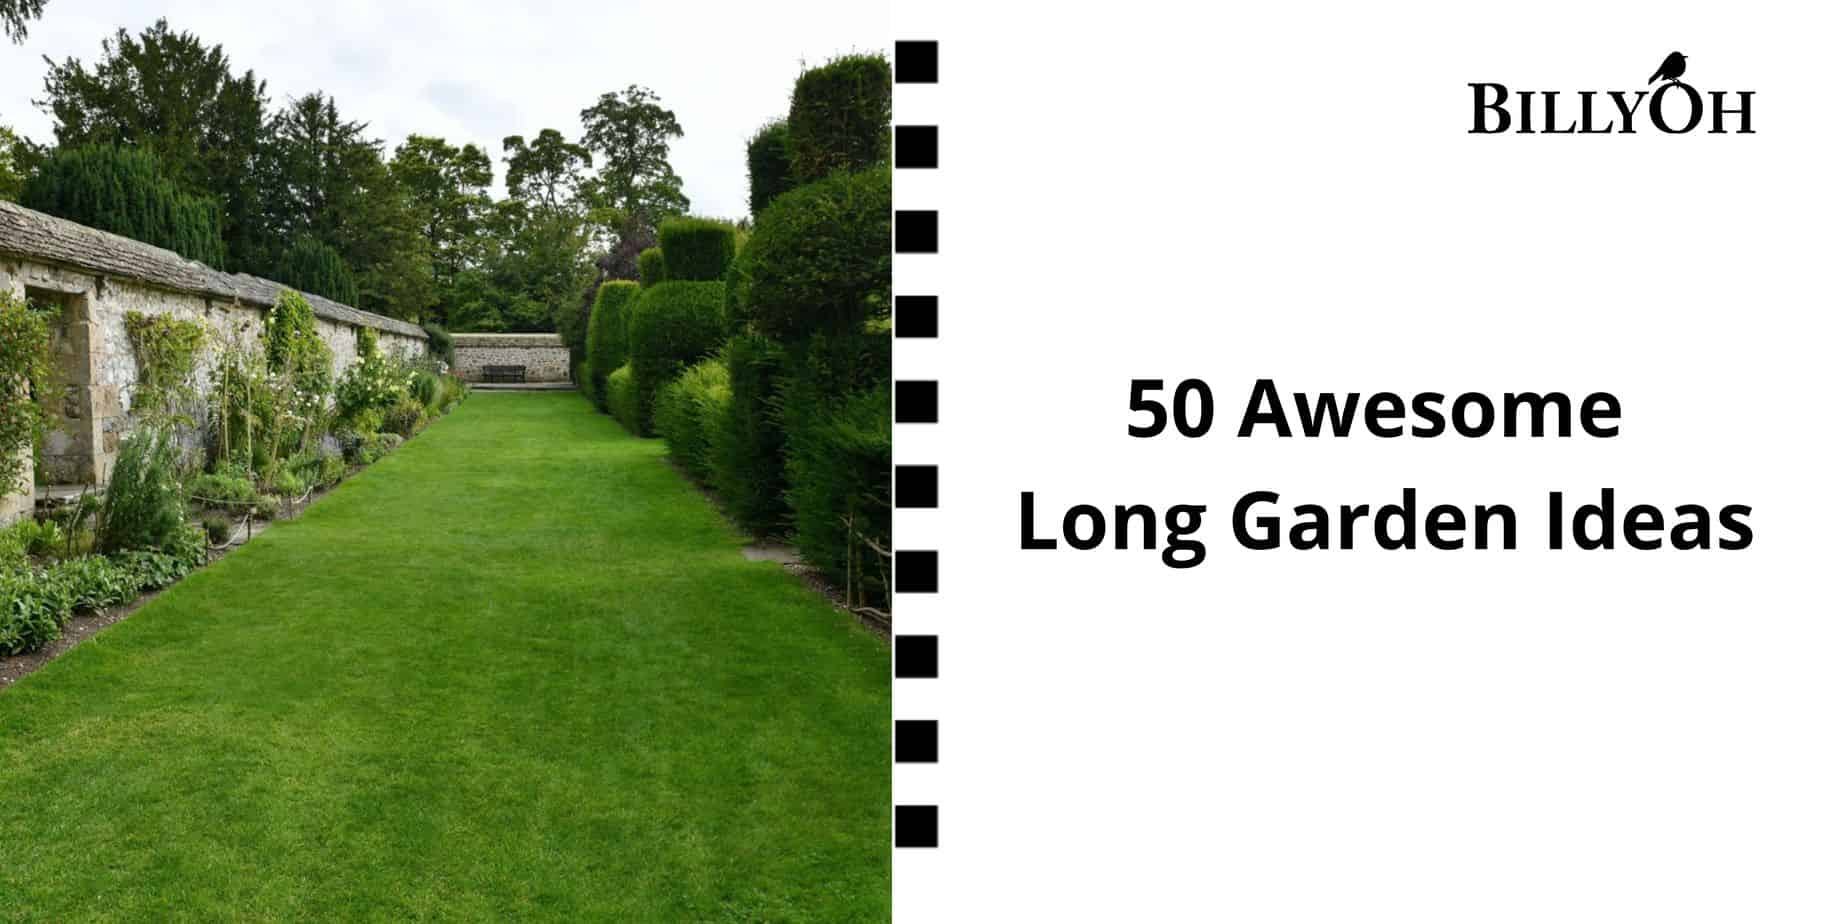 BillyOh 50 Awesome Long Garden Ideas with long stately garden